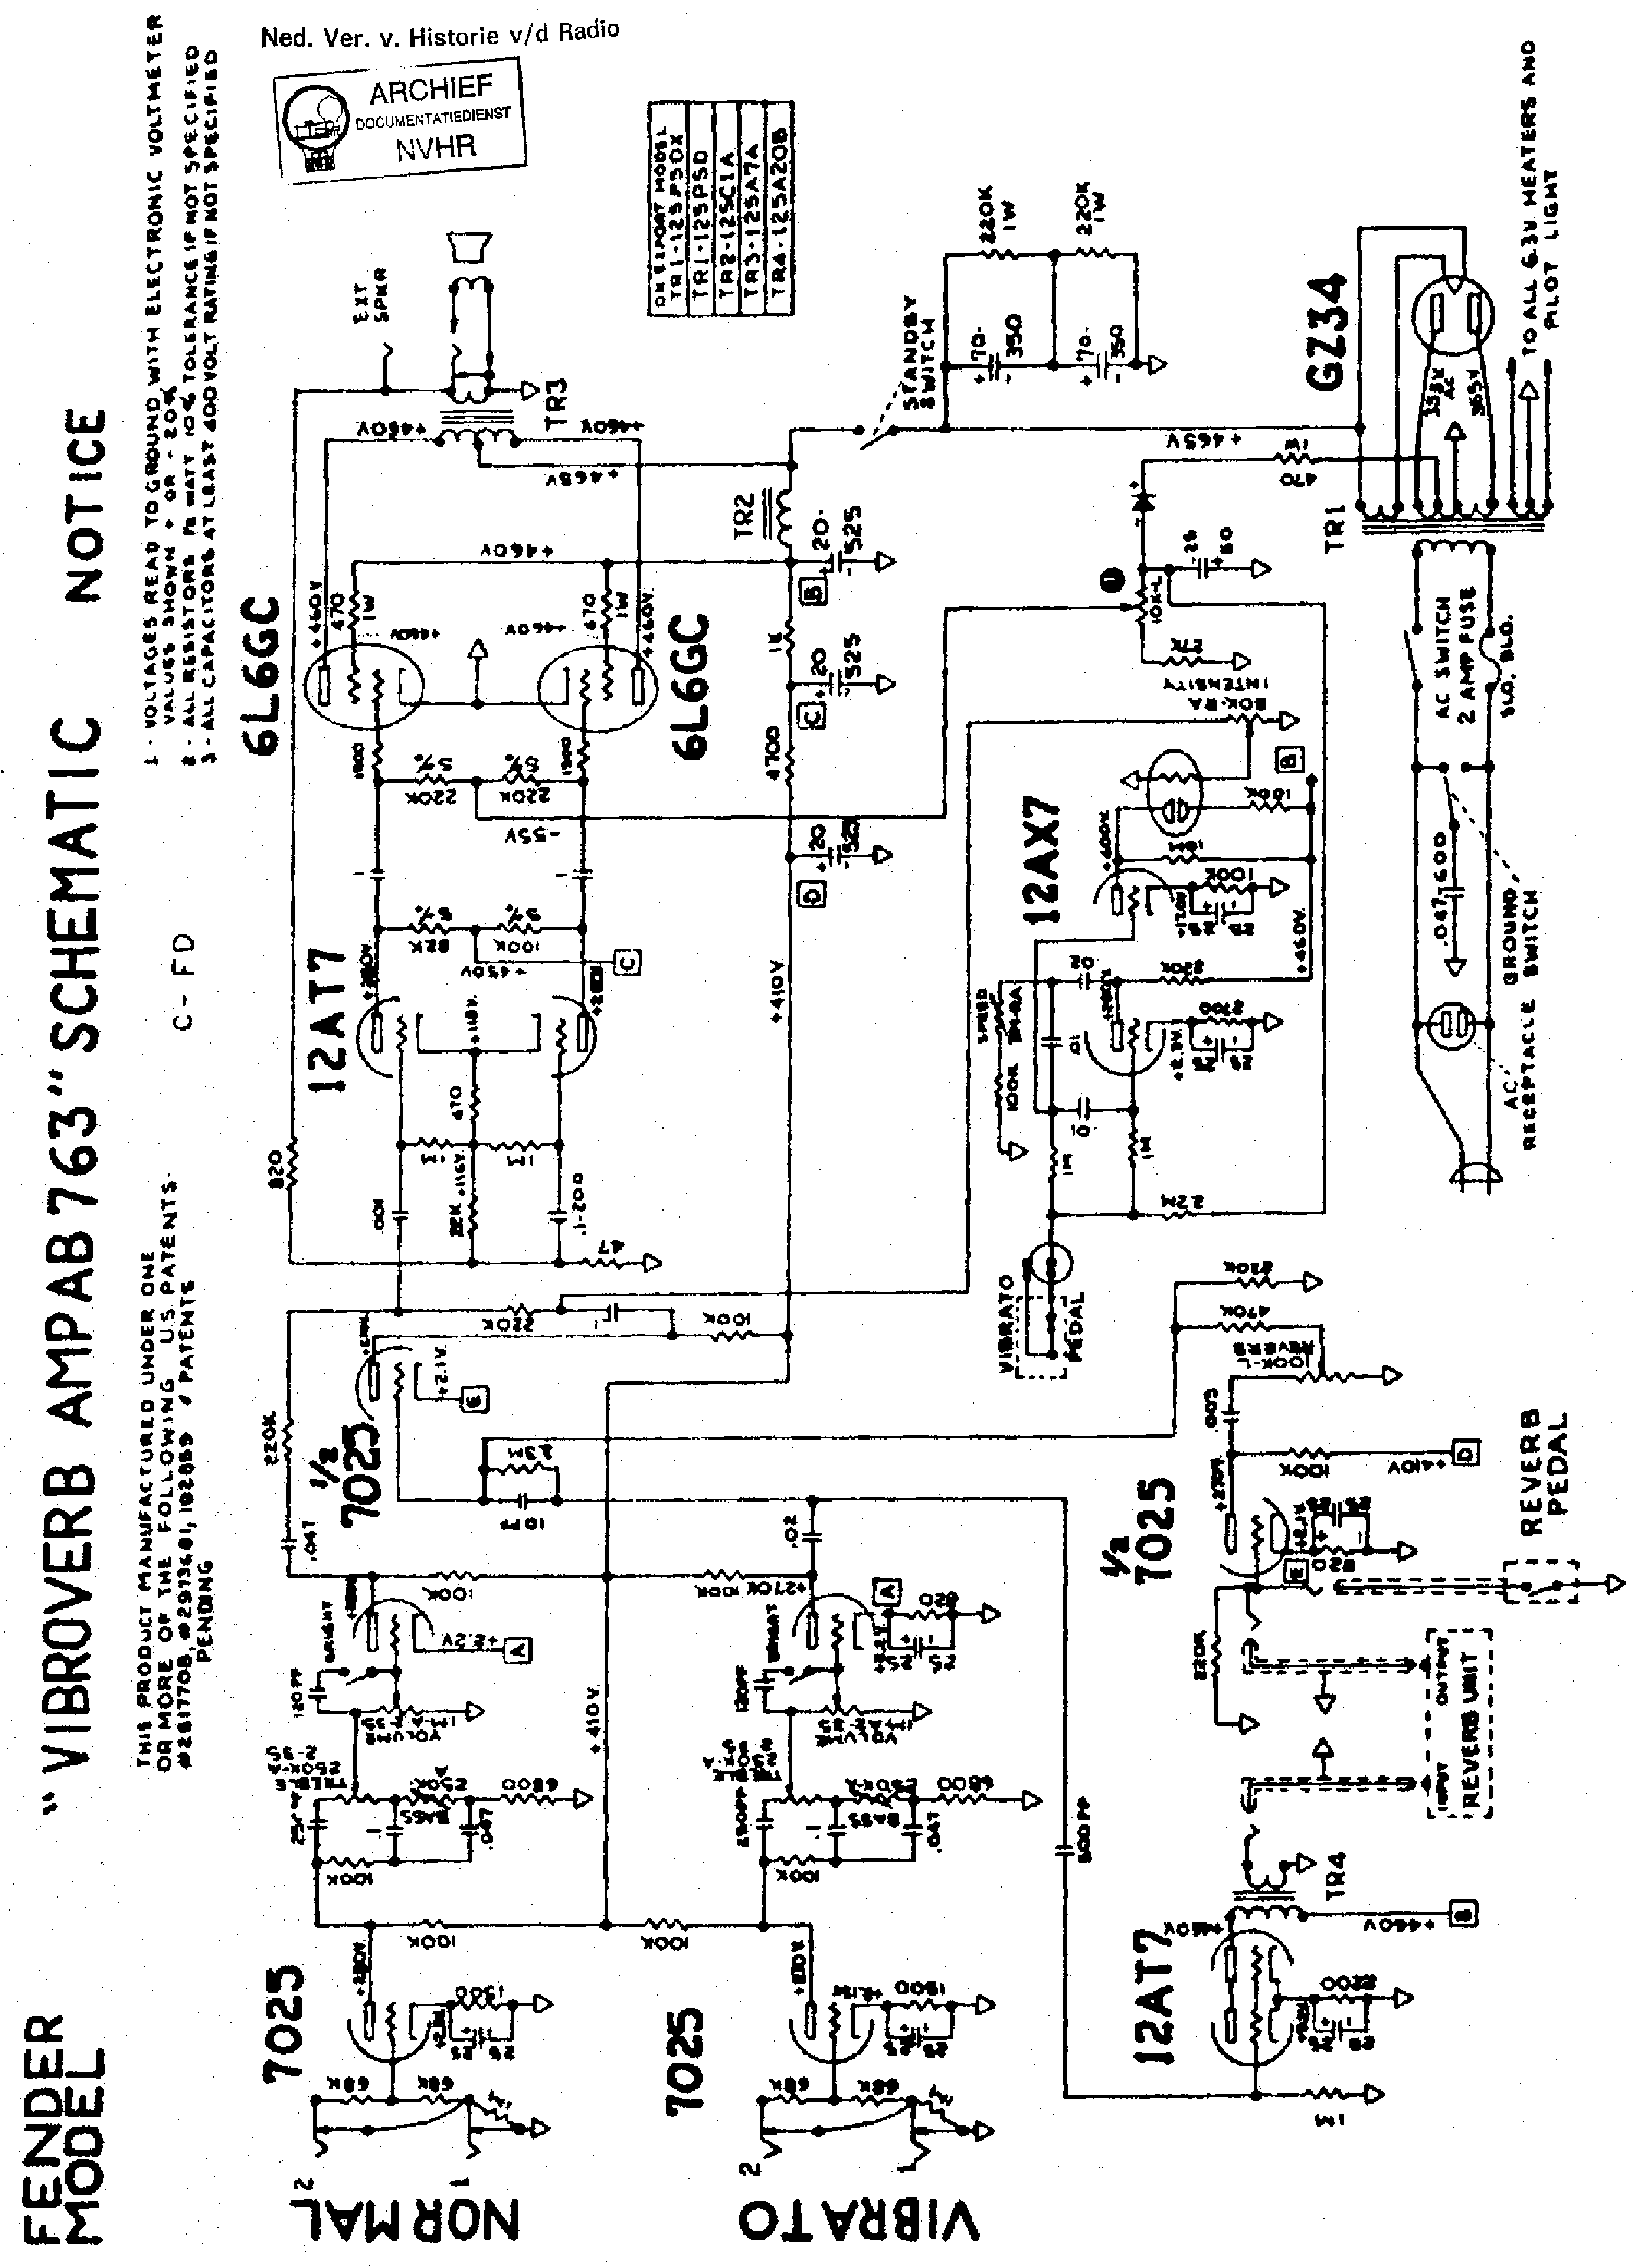 FENDER CONCERT-6G12A Service Manual download, schematics, eeprom, repair info for electronics